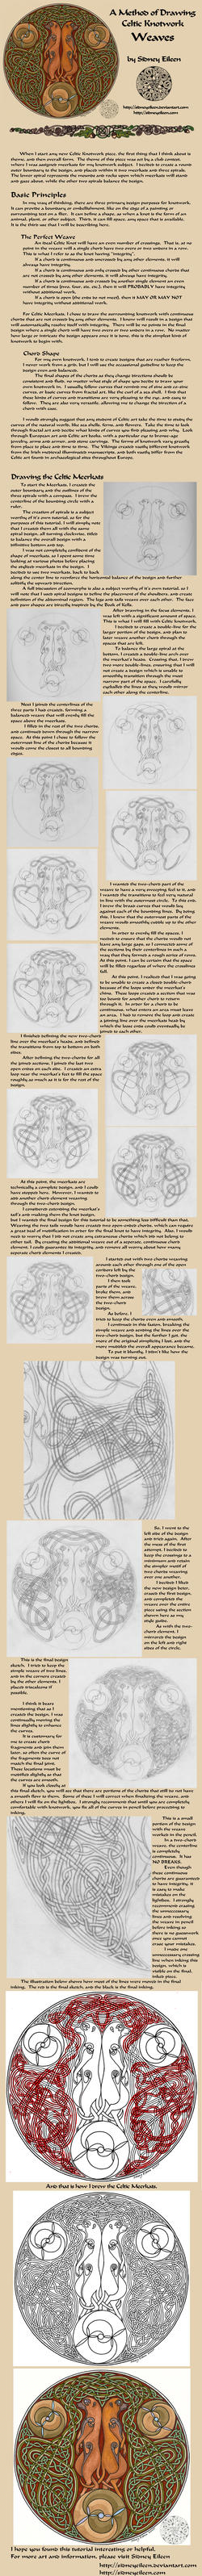 Drawing Celtic Knots - Weaves by sidneyeileen